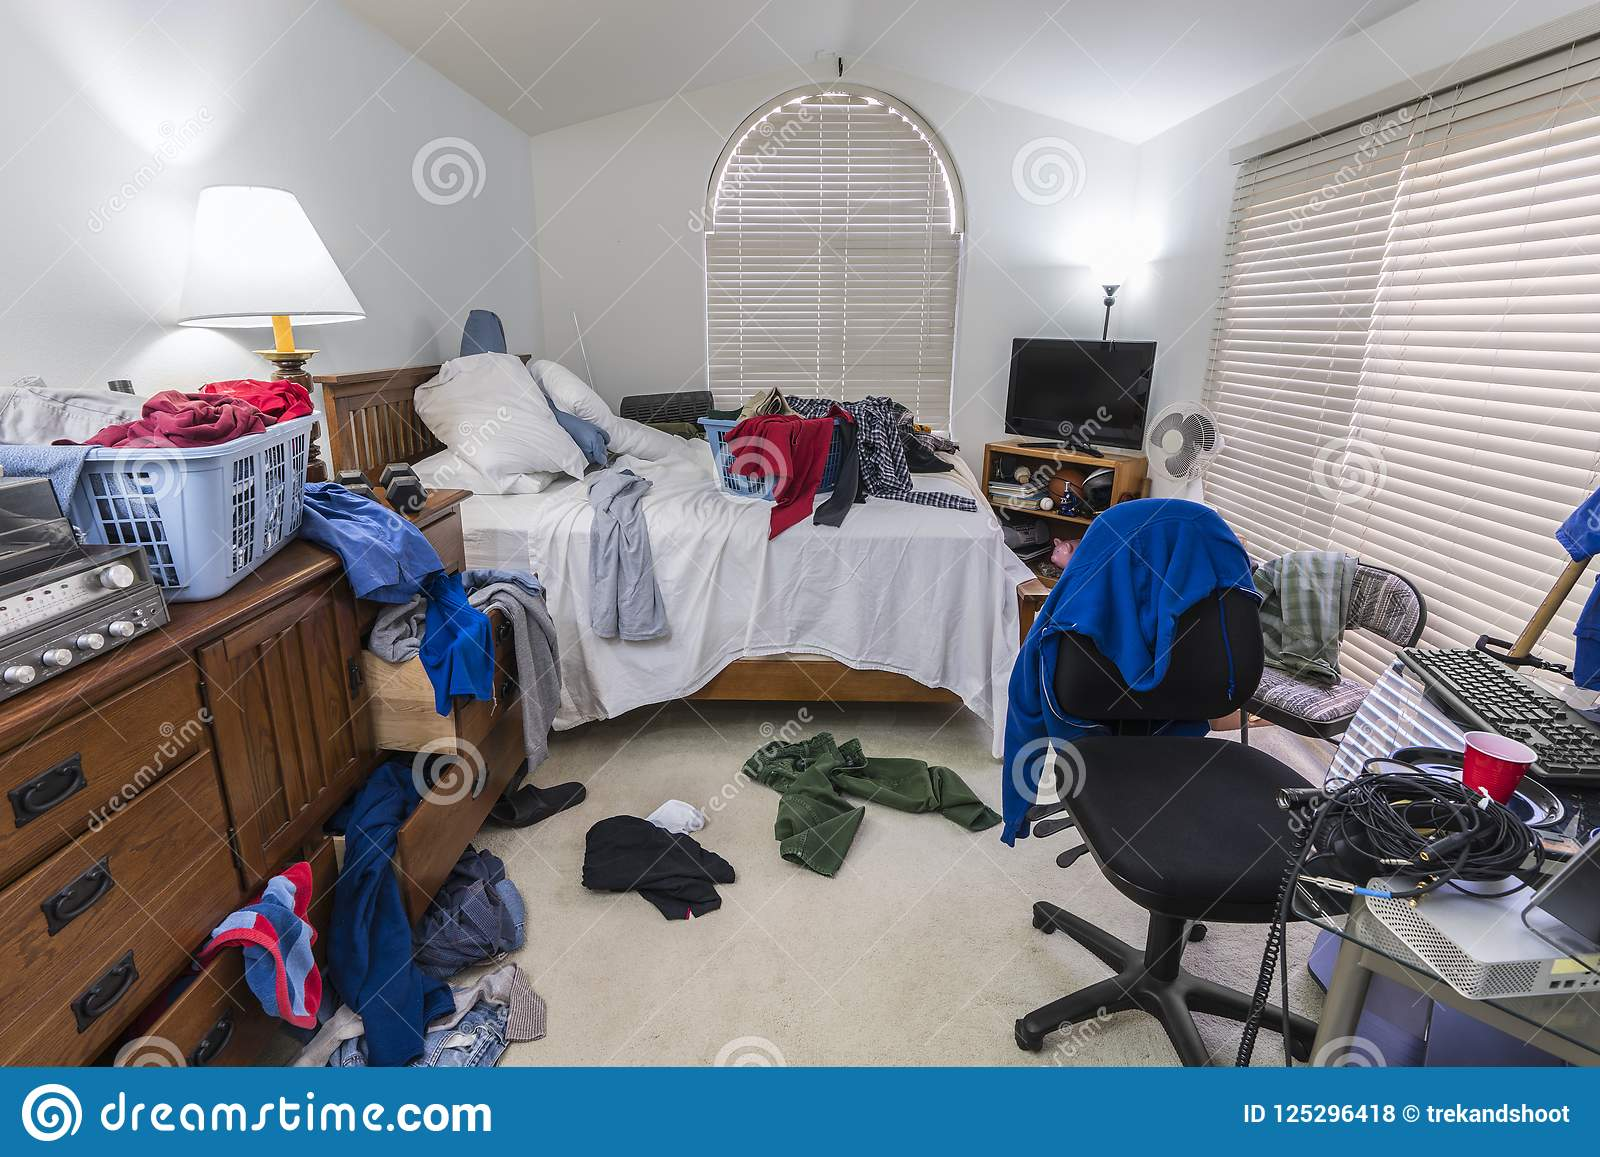 Messy Bedroom Stock Images - Download 2,801 Royalty Free ...